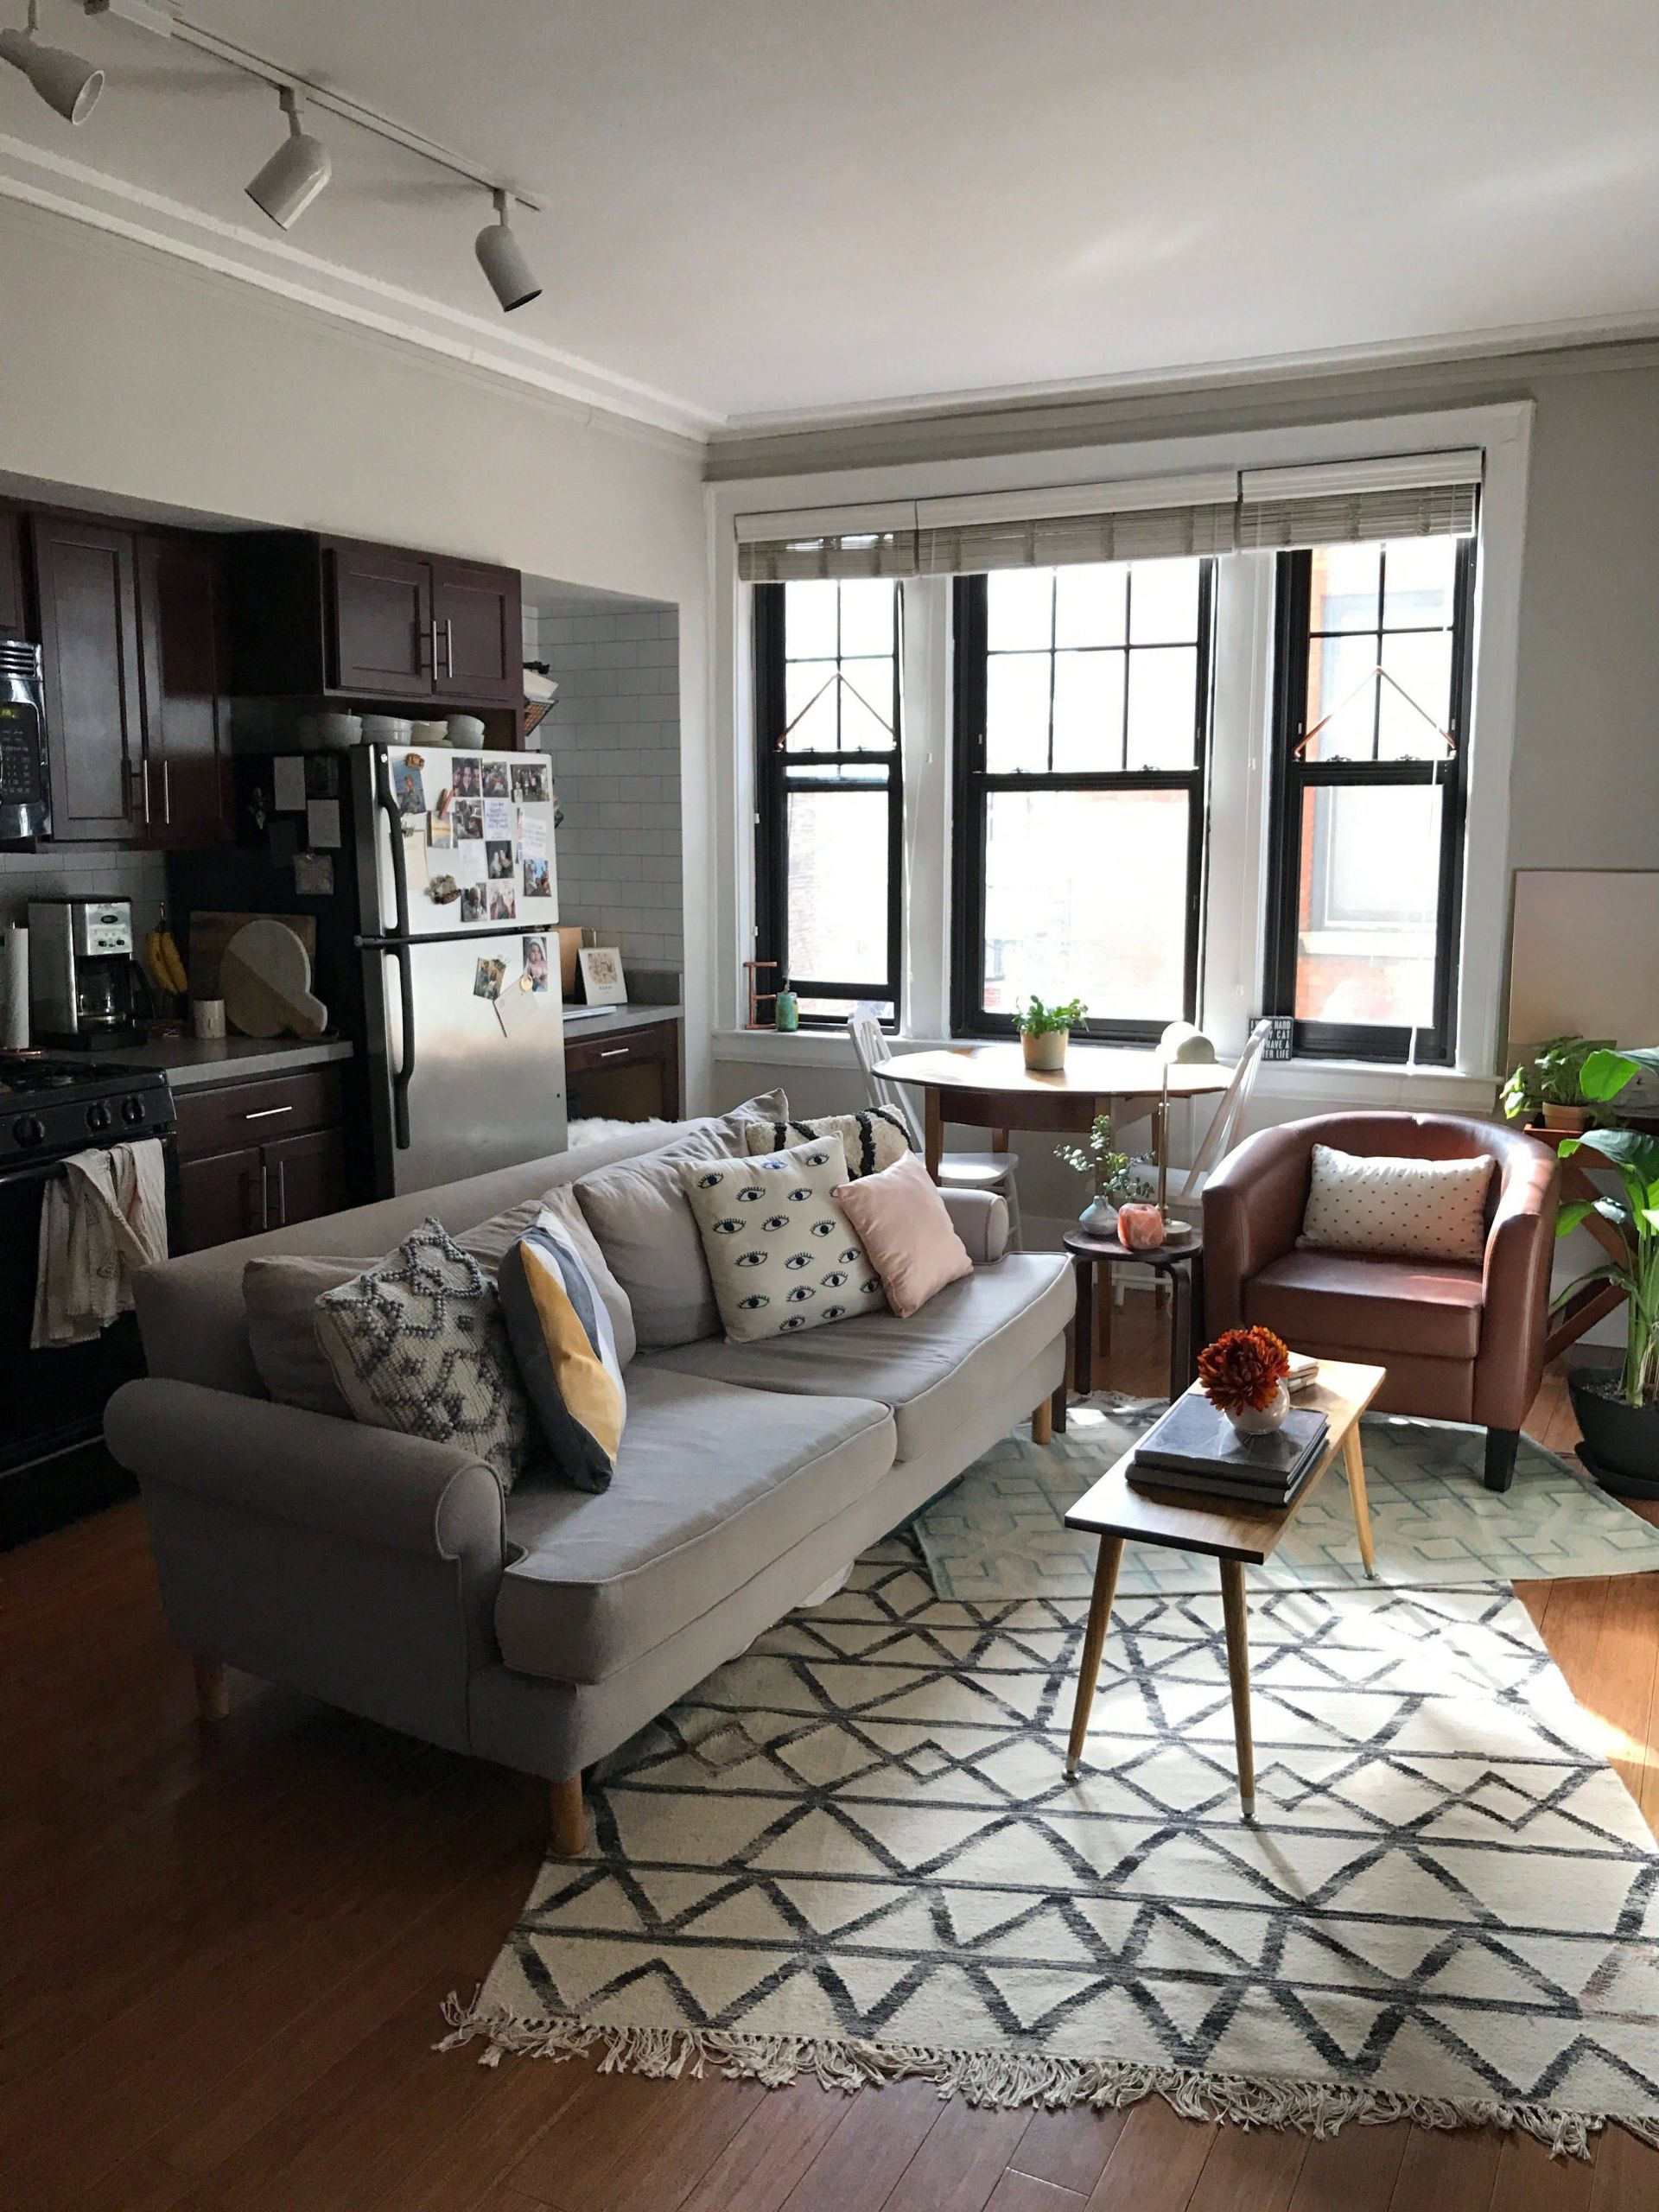 Studio Apartment Designs New A Smart Layout Makes This Studio Feel Big and Bright